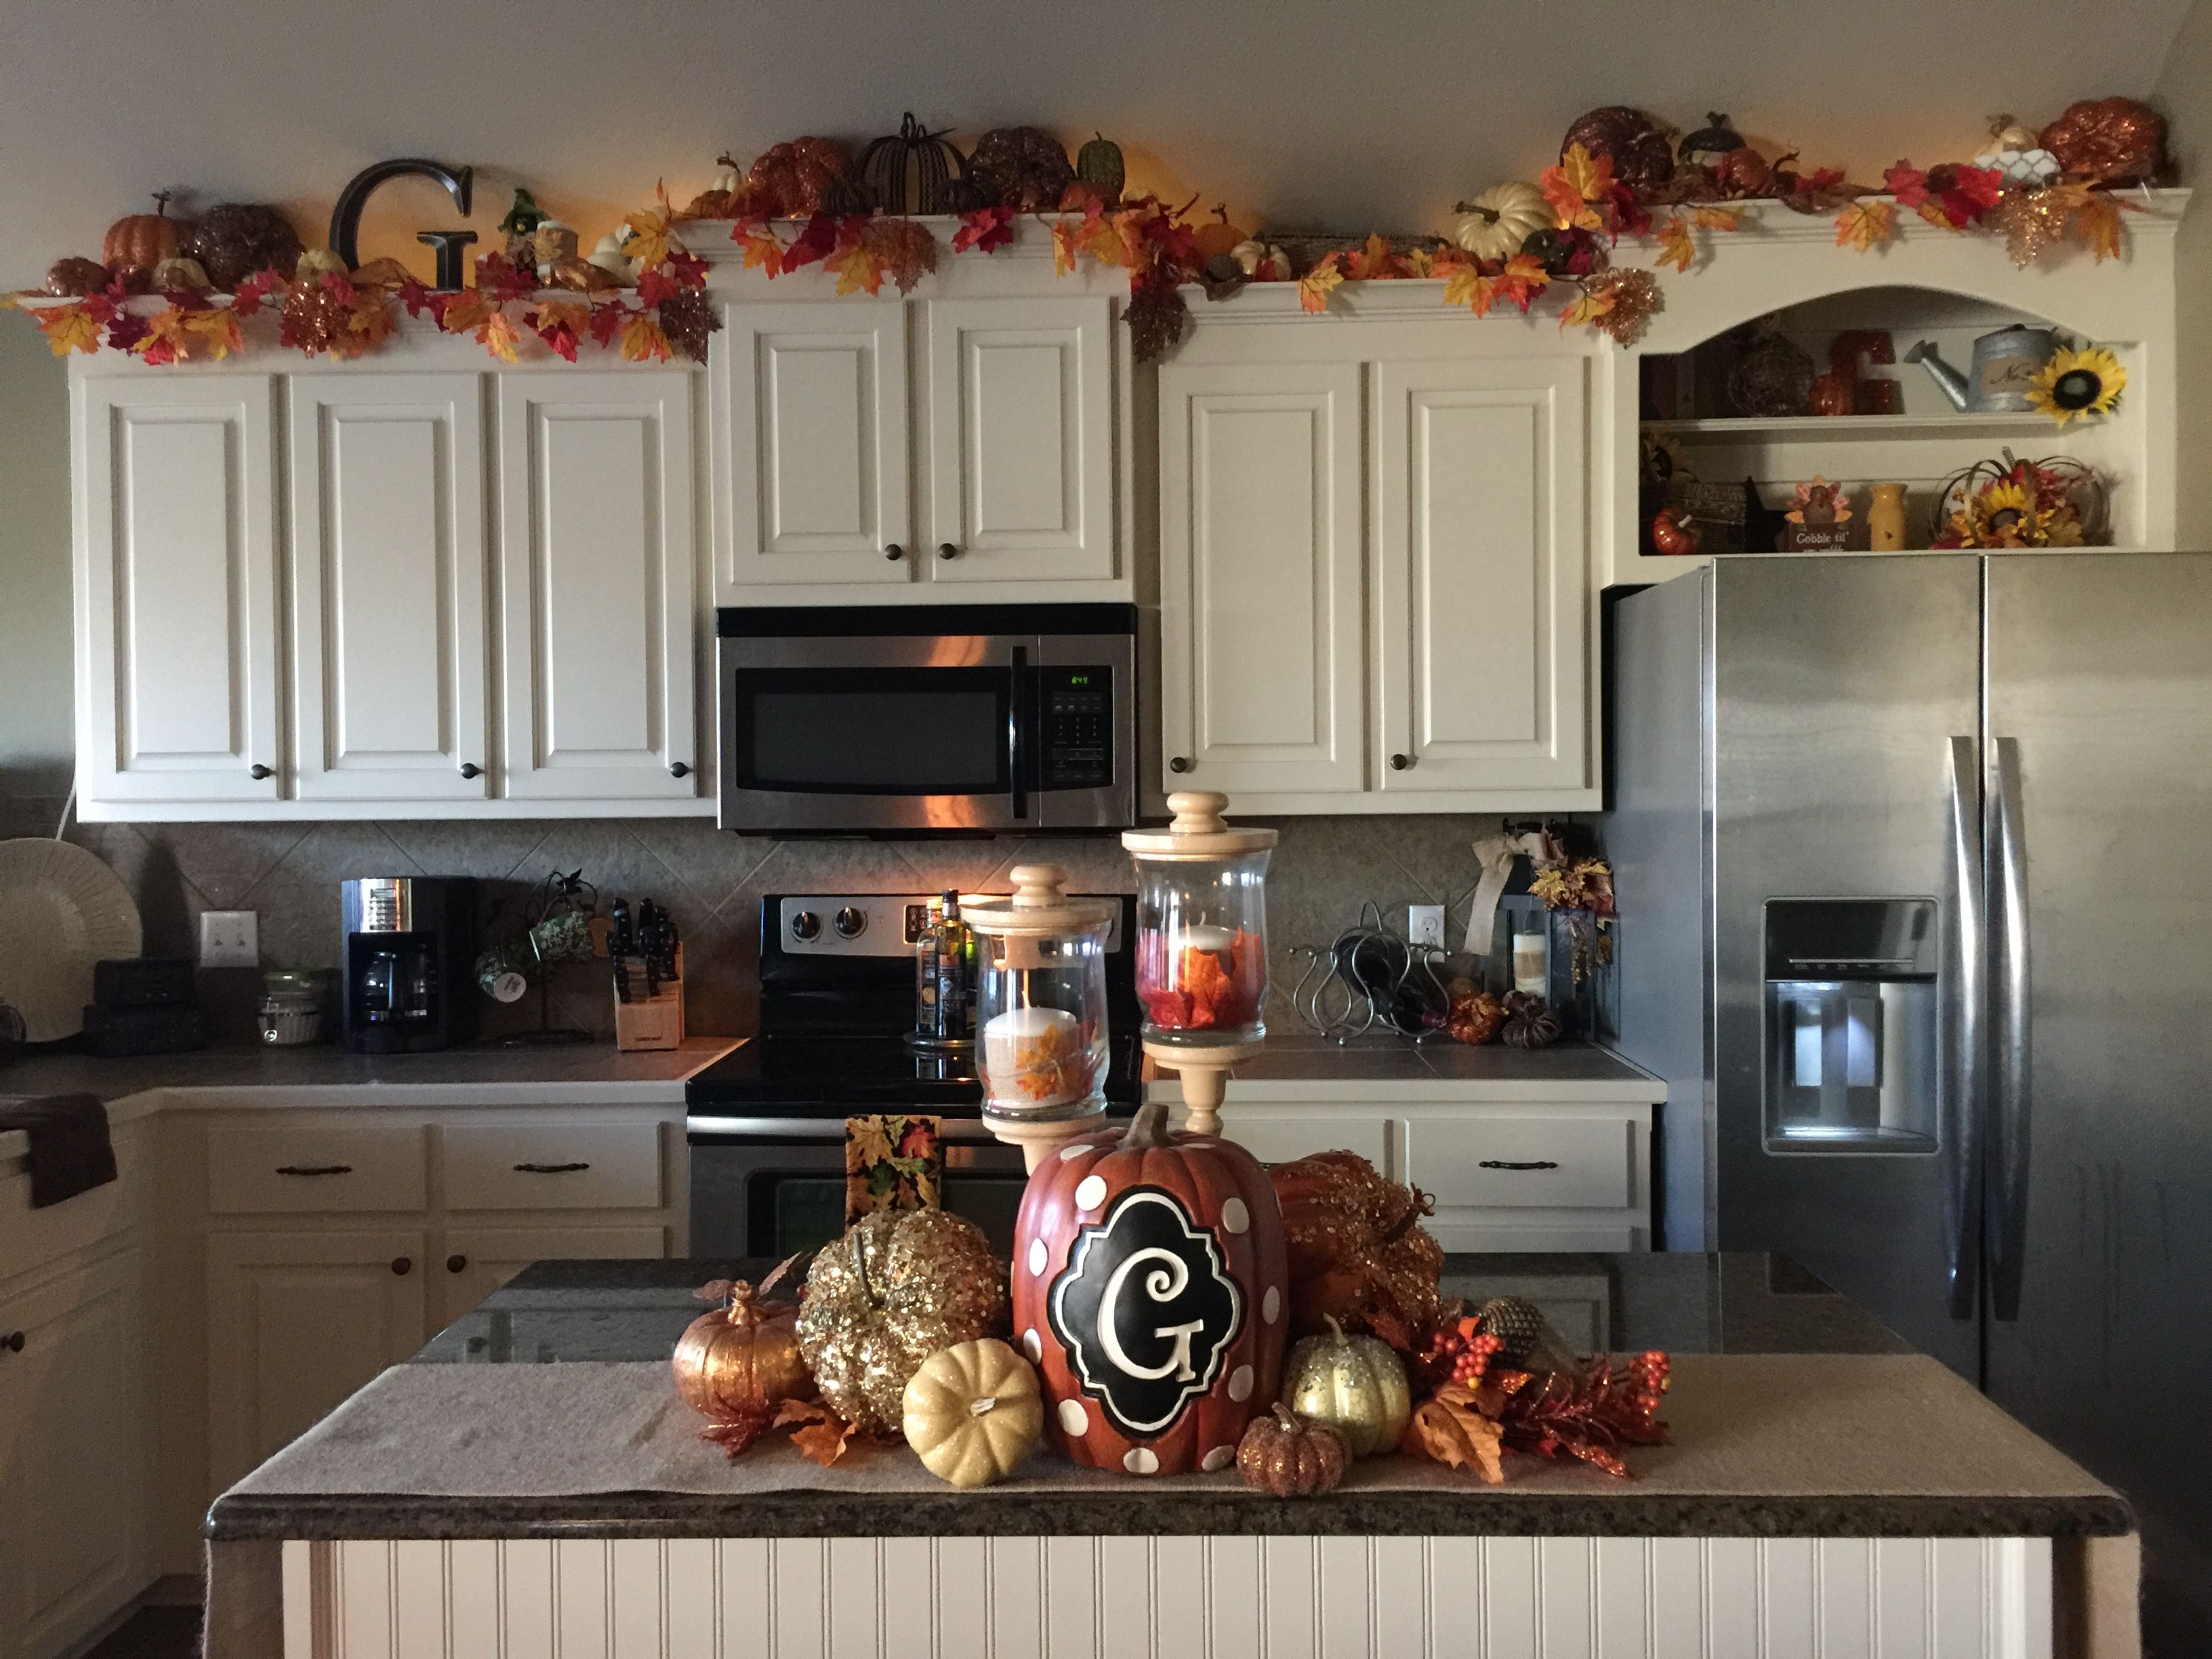 Starter home fall decor, small kitchen, fall decorations ...